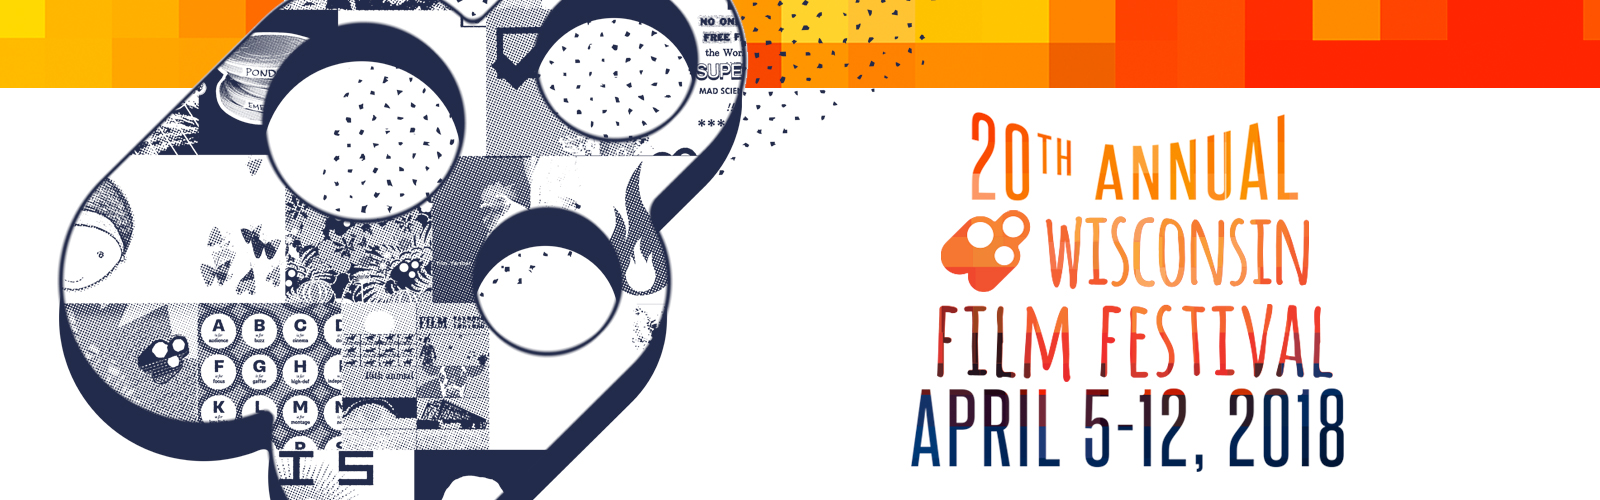 20th Annual Wisconsin Film Festival April 5-12, 2018